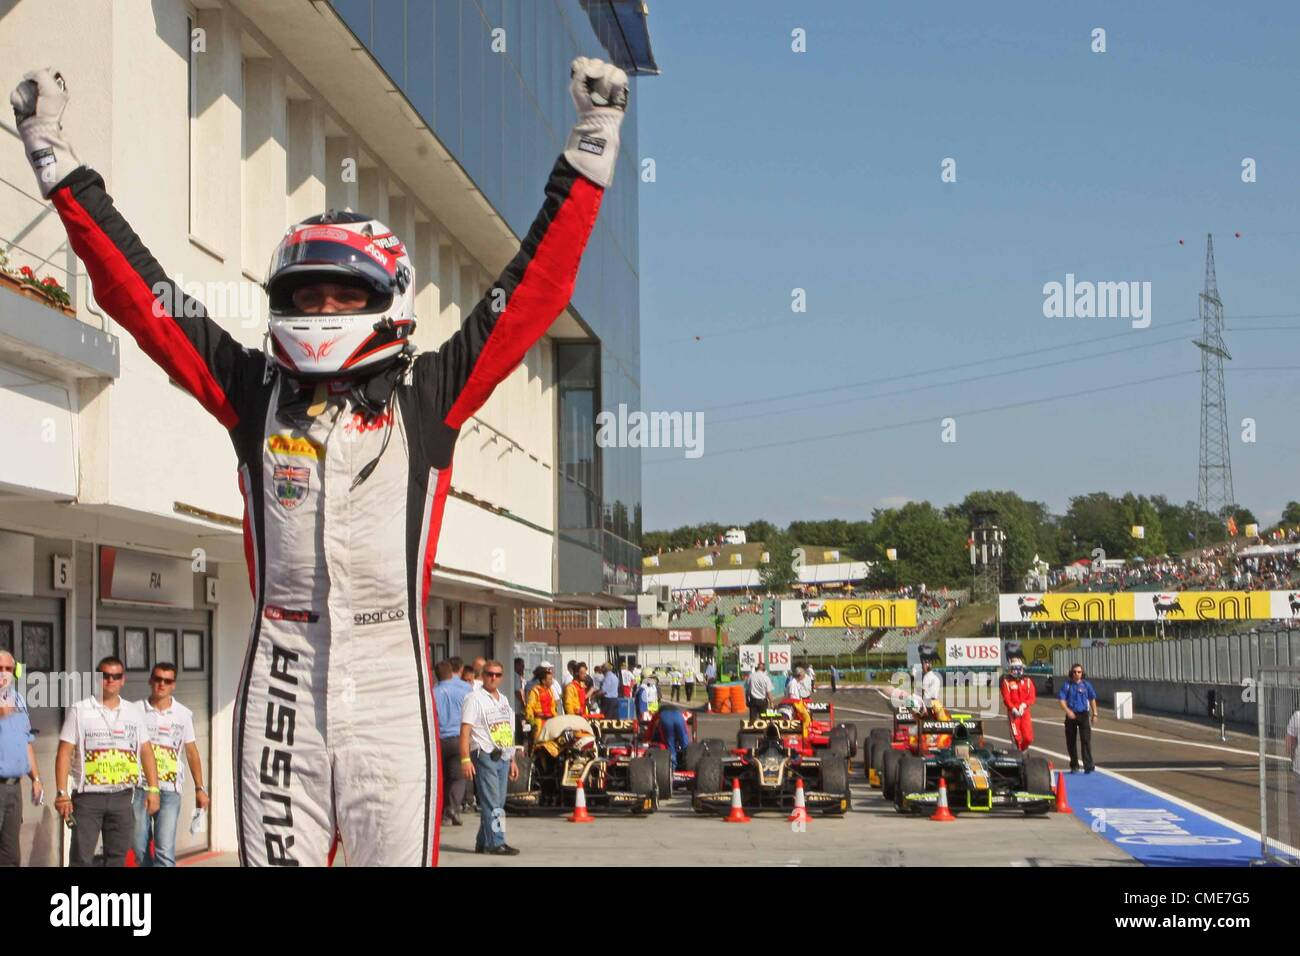 28.07.2012. Budapest, Hungary. FIA GP2  Motor racing.  Max Chilton wins his first ever GP2 race with Carlin - Stock Image